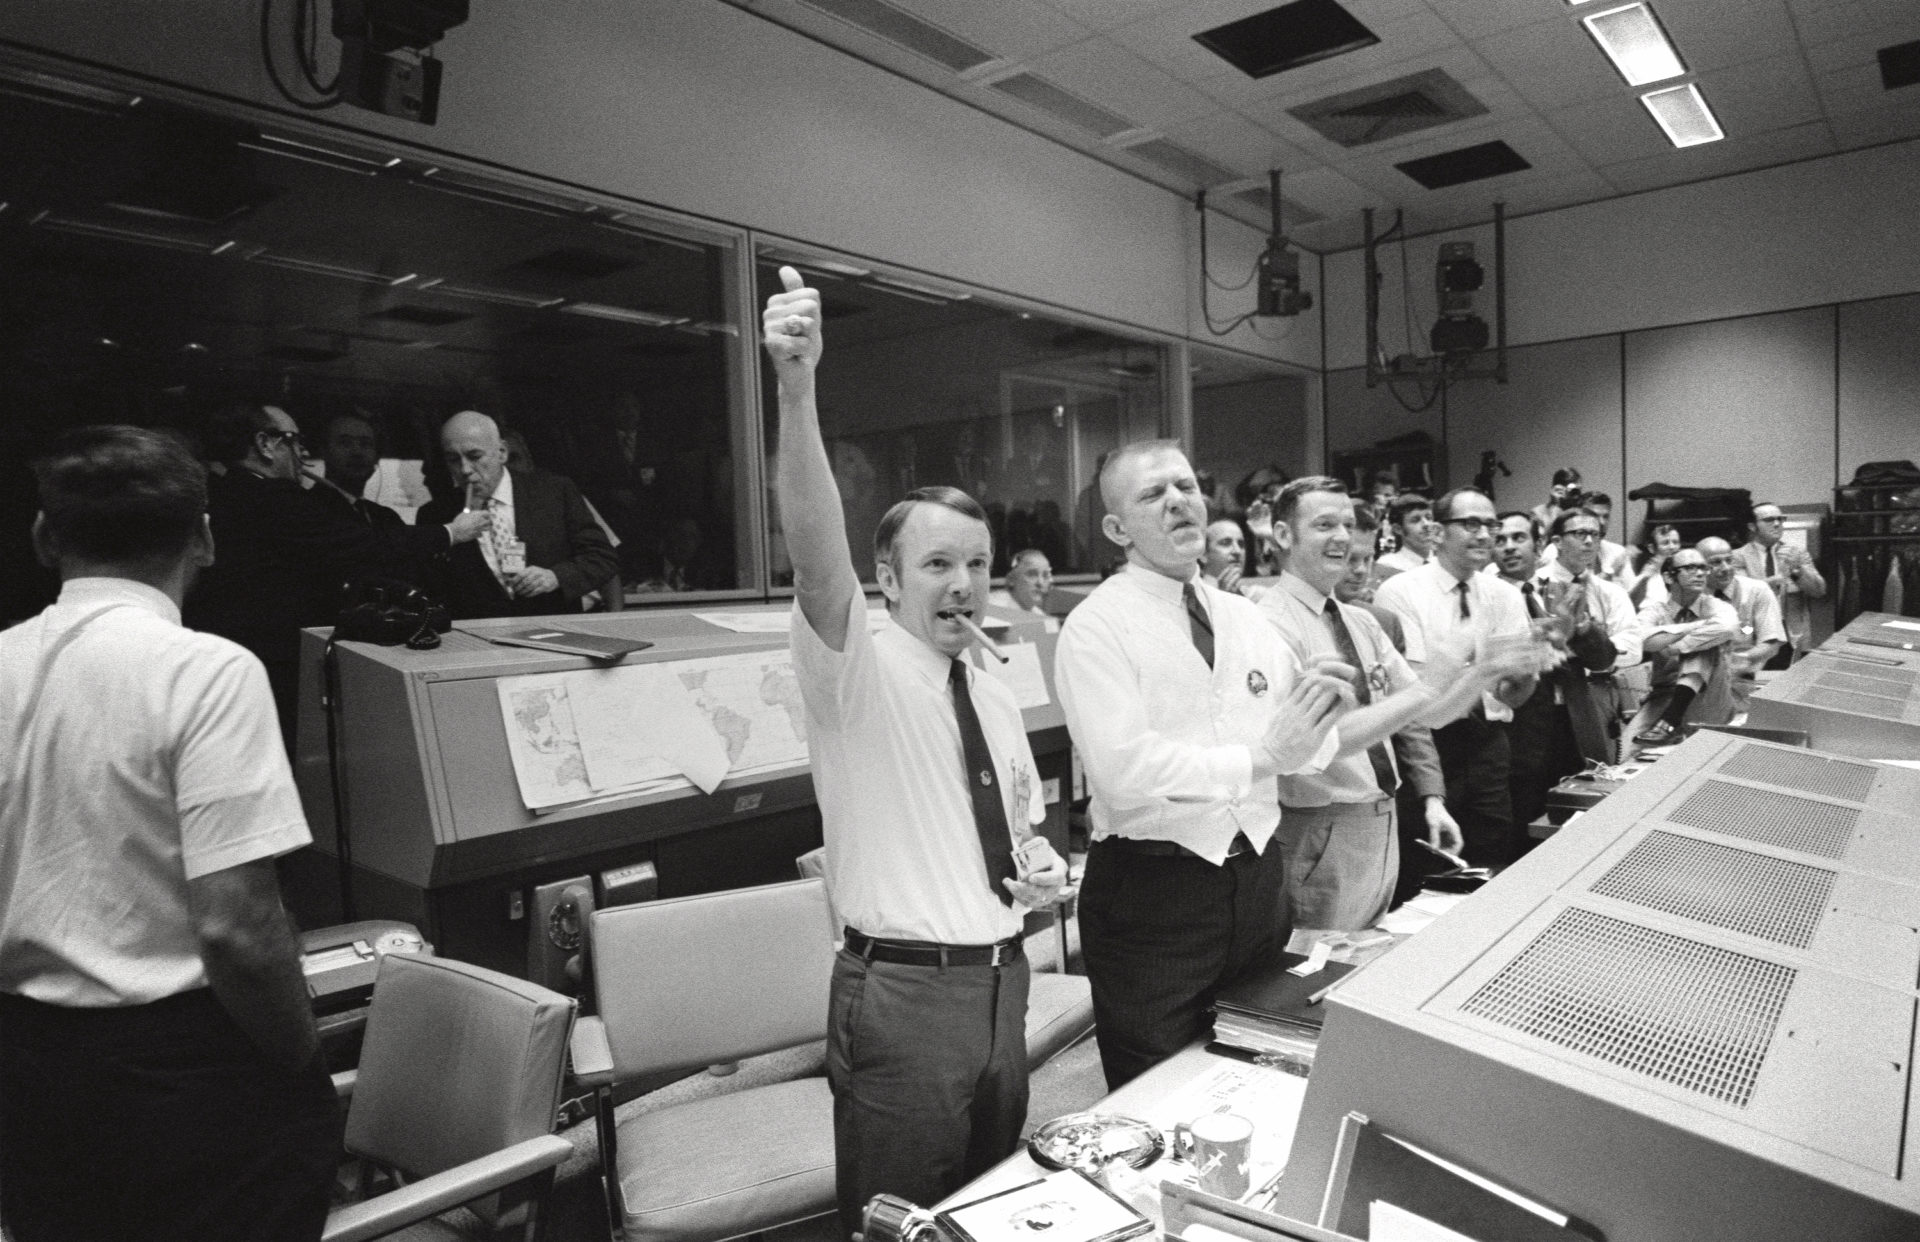 Mission control celebrates a safe return with a big thumbs up!